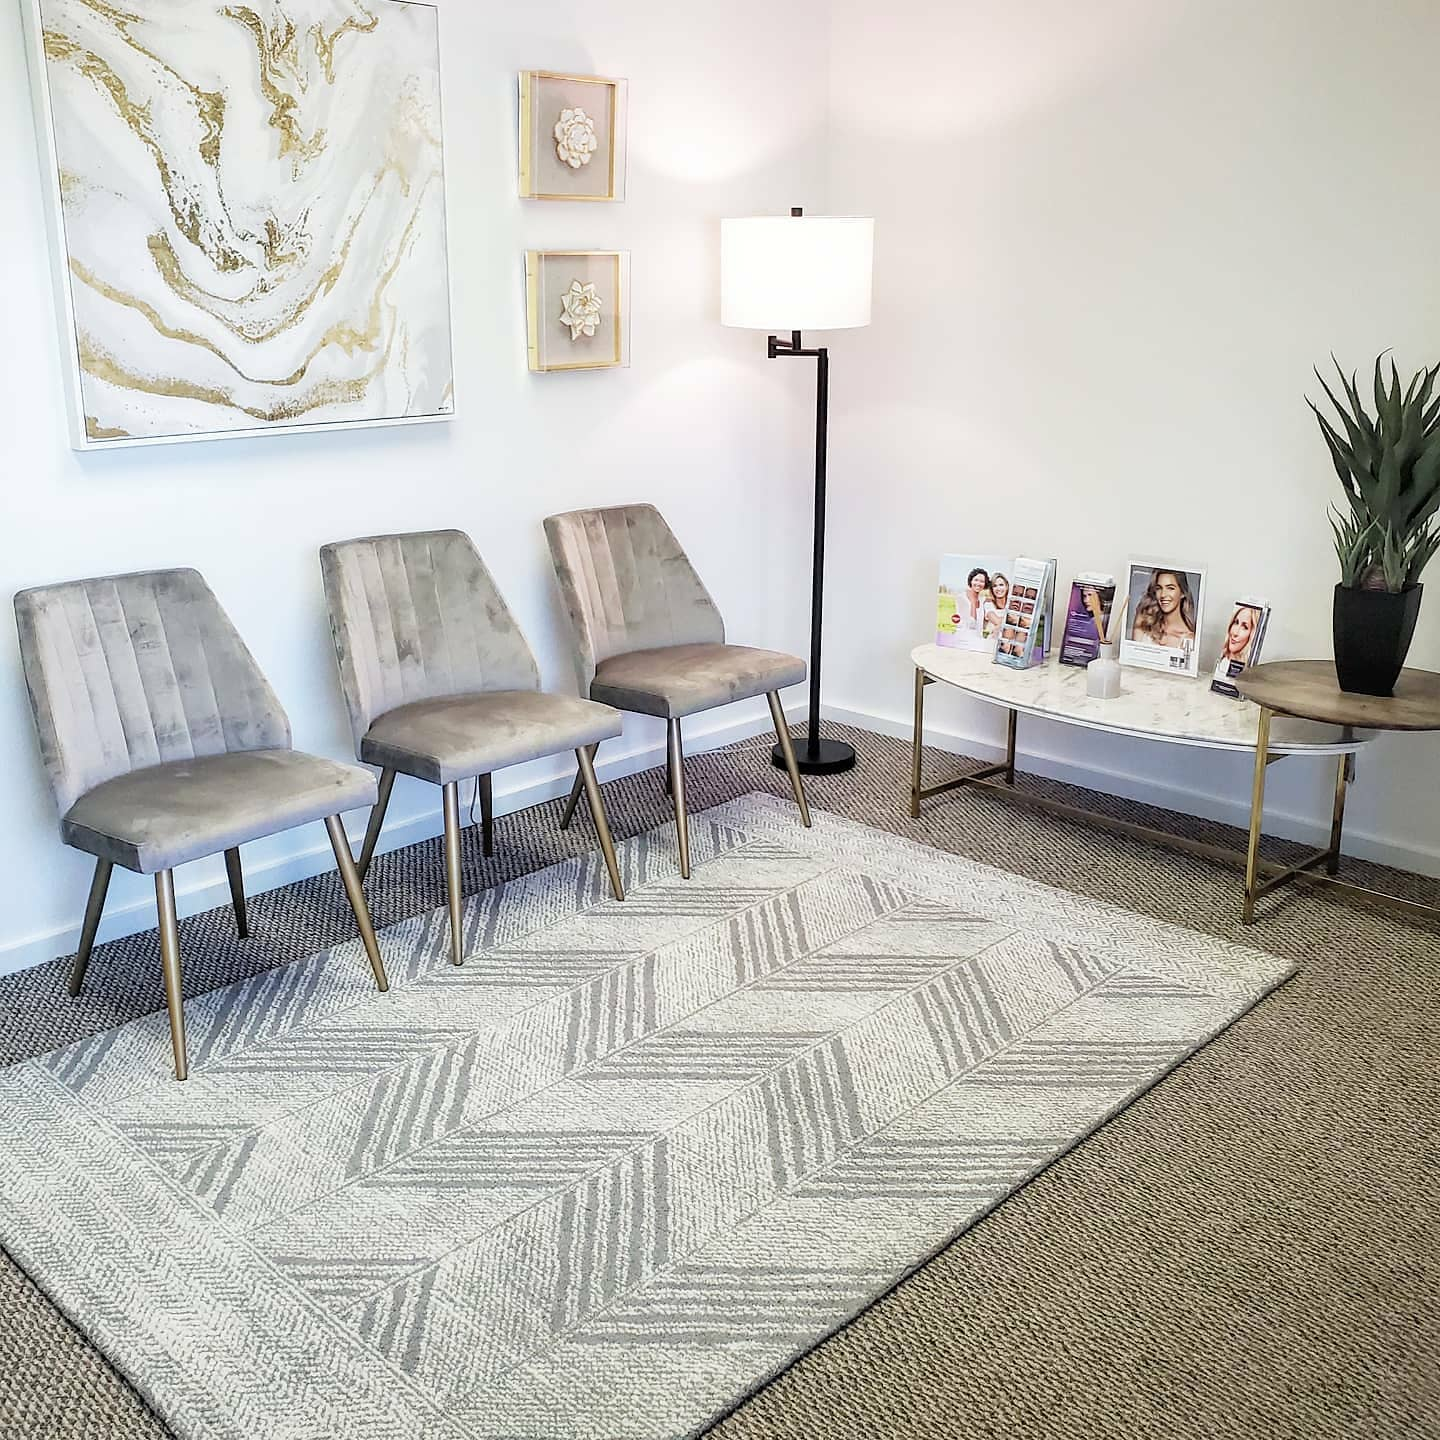 Lobby waiting room at Gorin Plastic Surgery and MedSpa in Tualatin